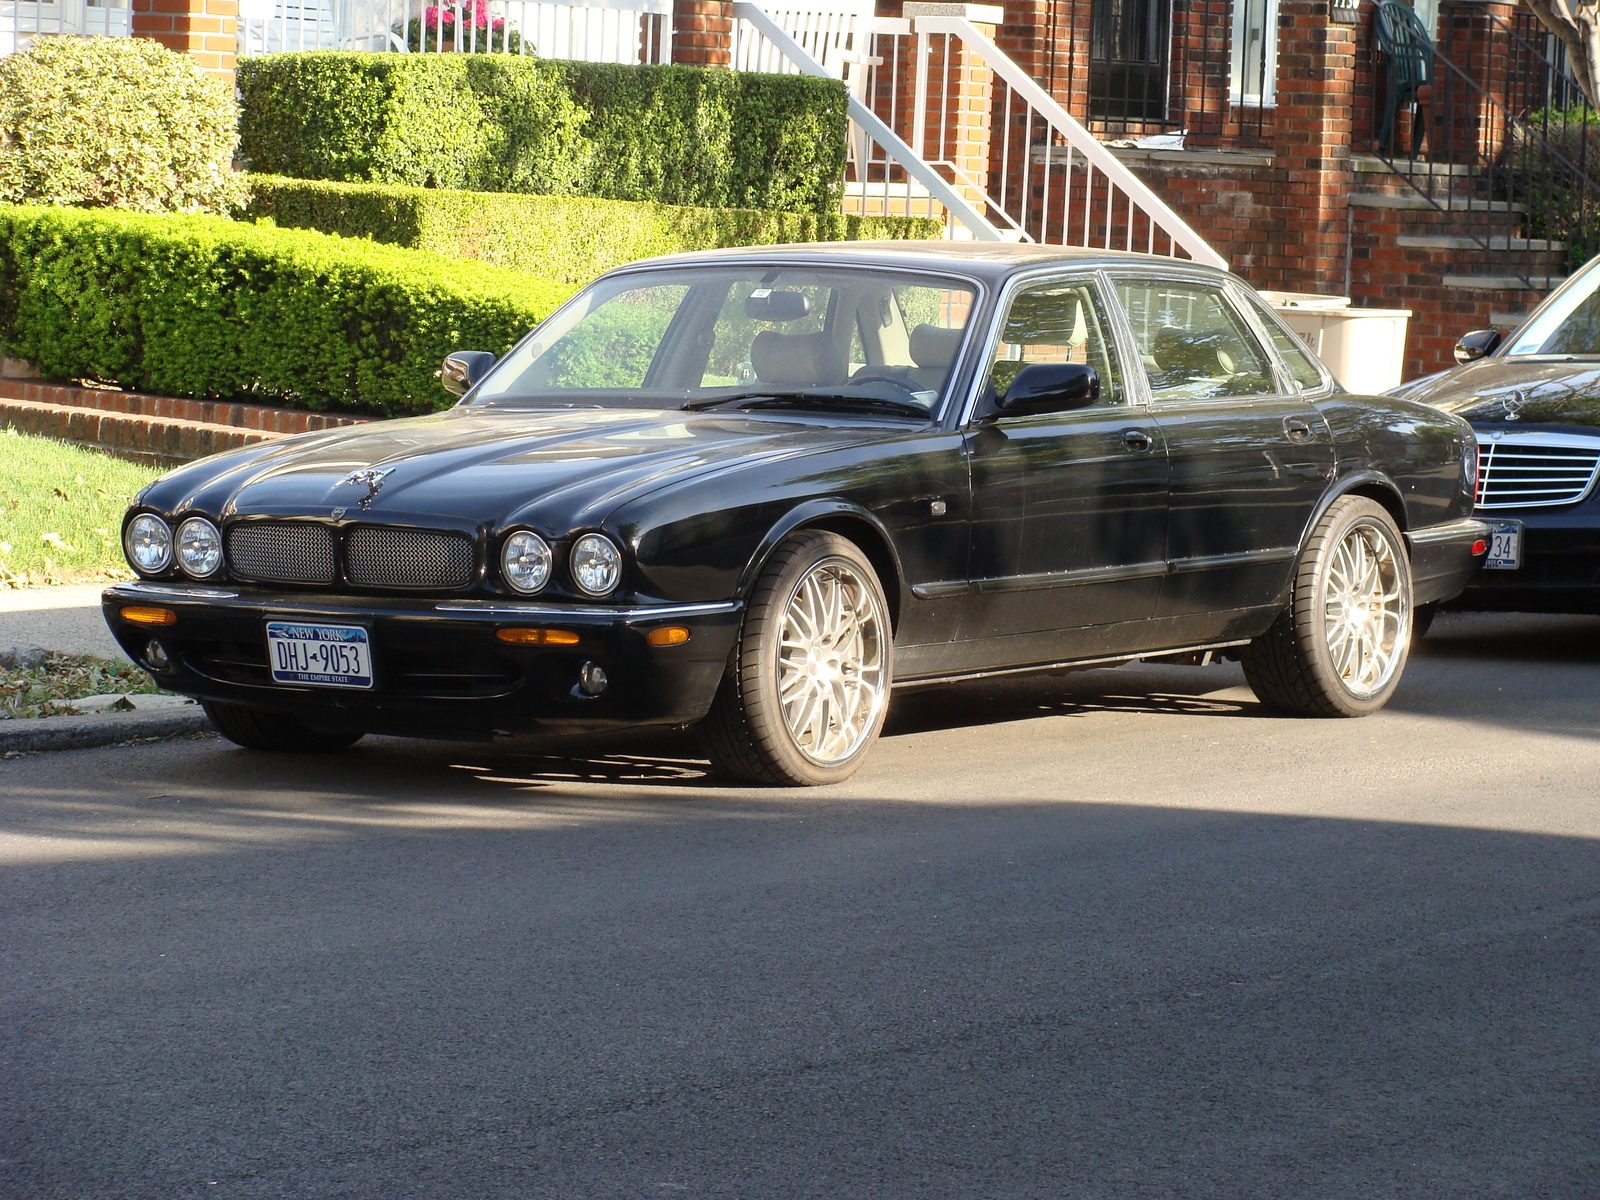 page wheels have used for xj forums jaguar an on xjr one else here a any forum sale